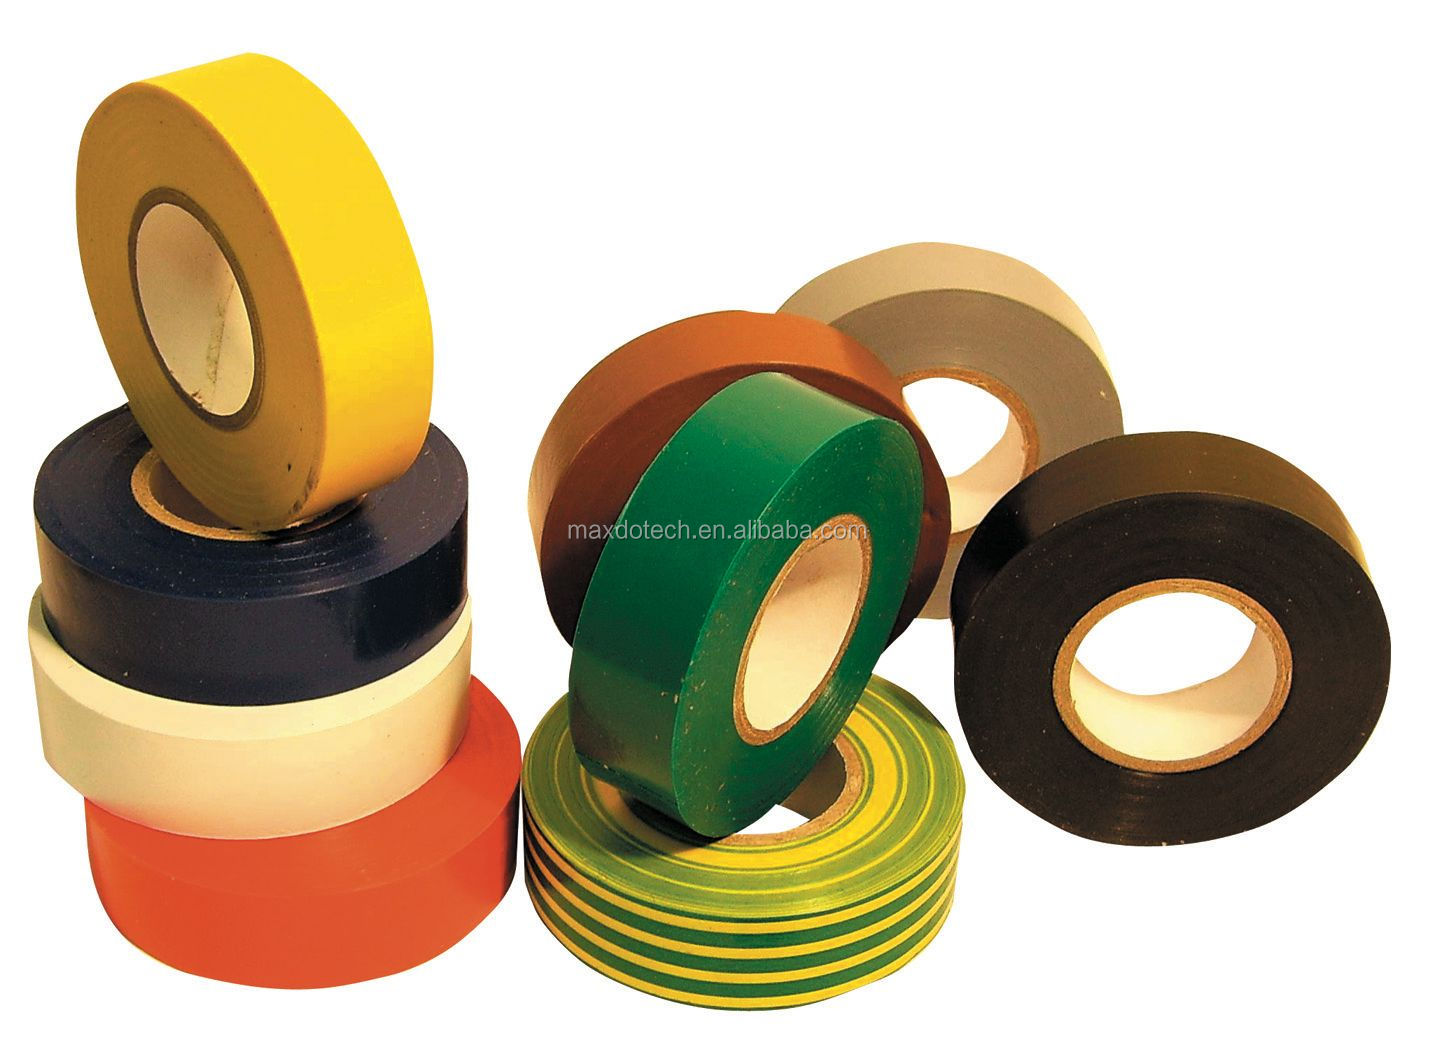 UL listed Electrical Vinyl PVC insulation tape like VINI DENKA